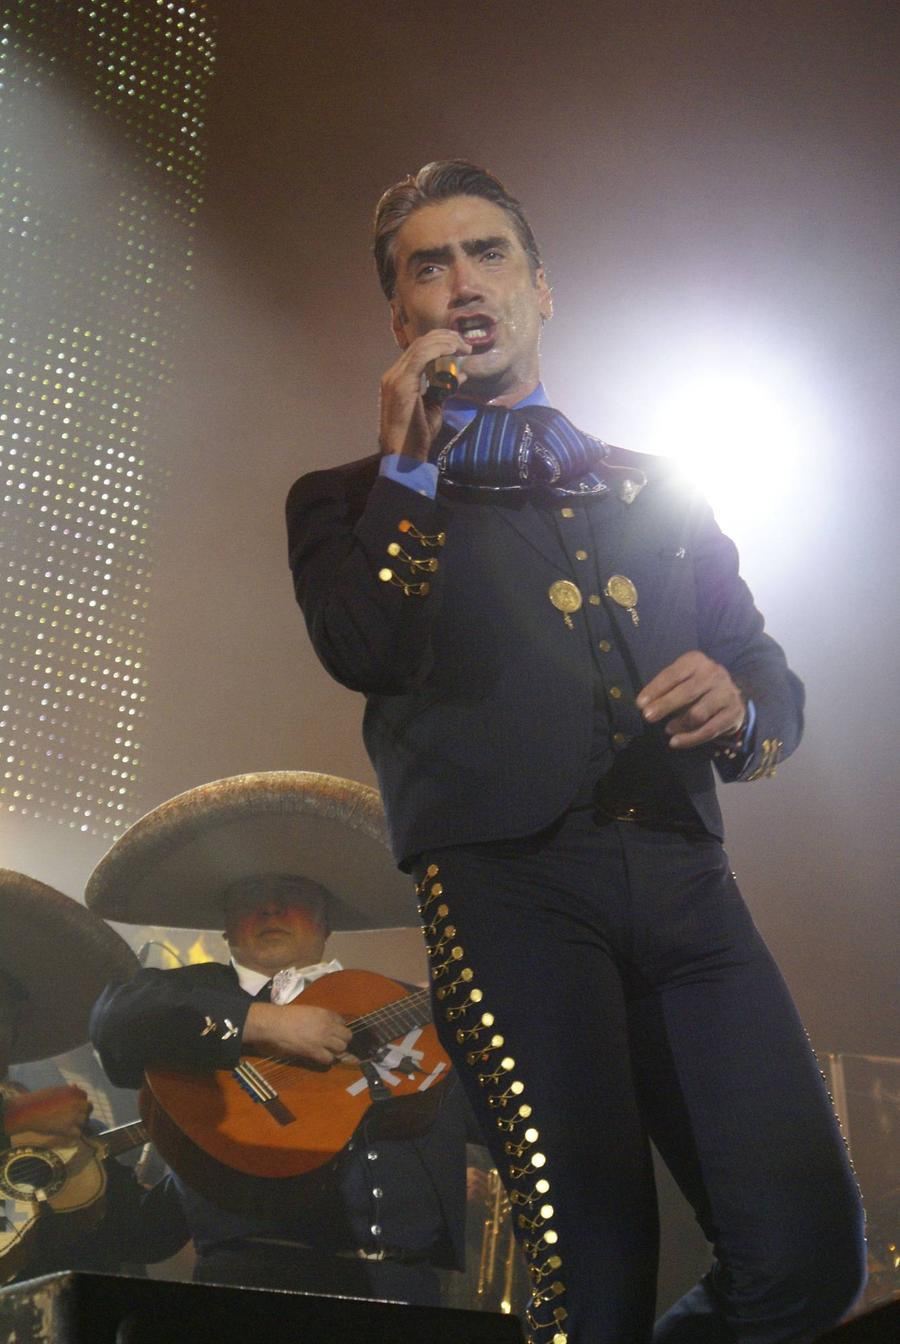 Alejandro Fernandez Plays Down Luis Miguel Photo 'Jab'